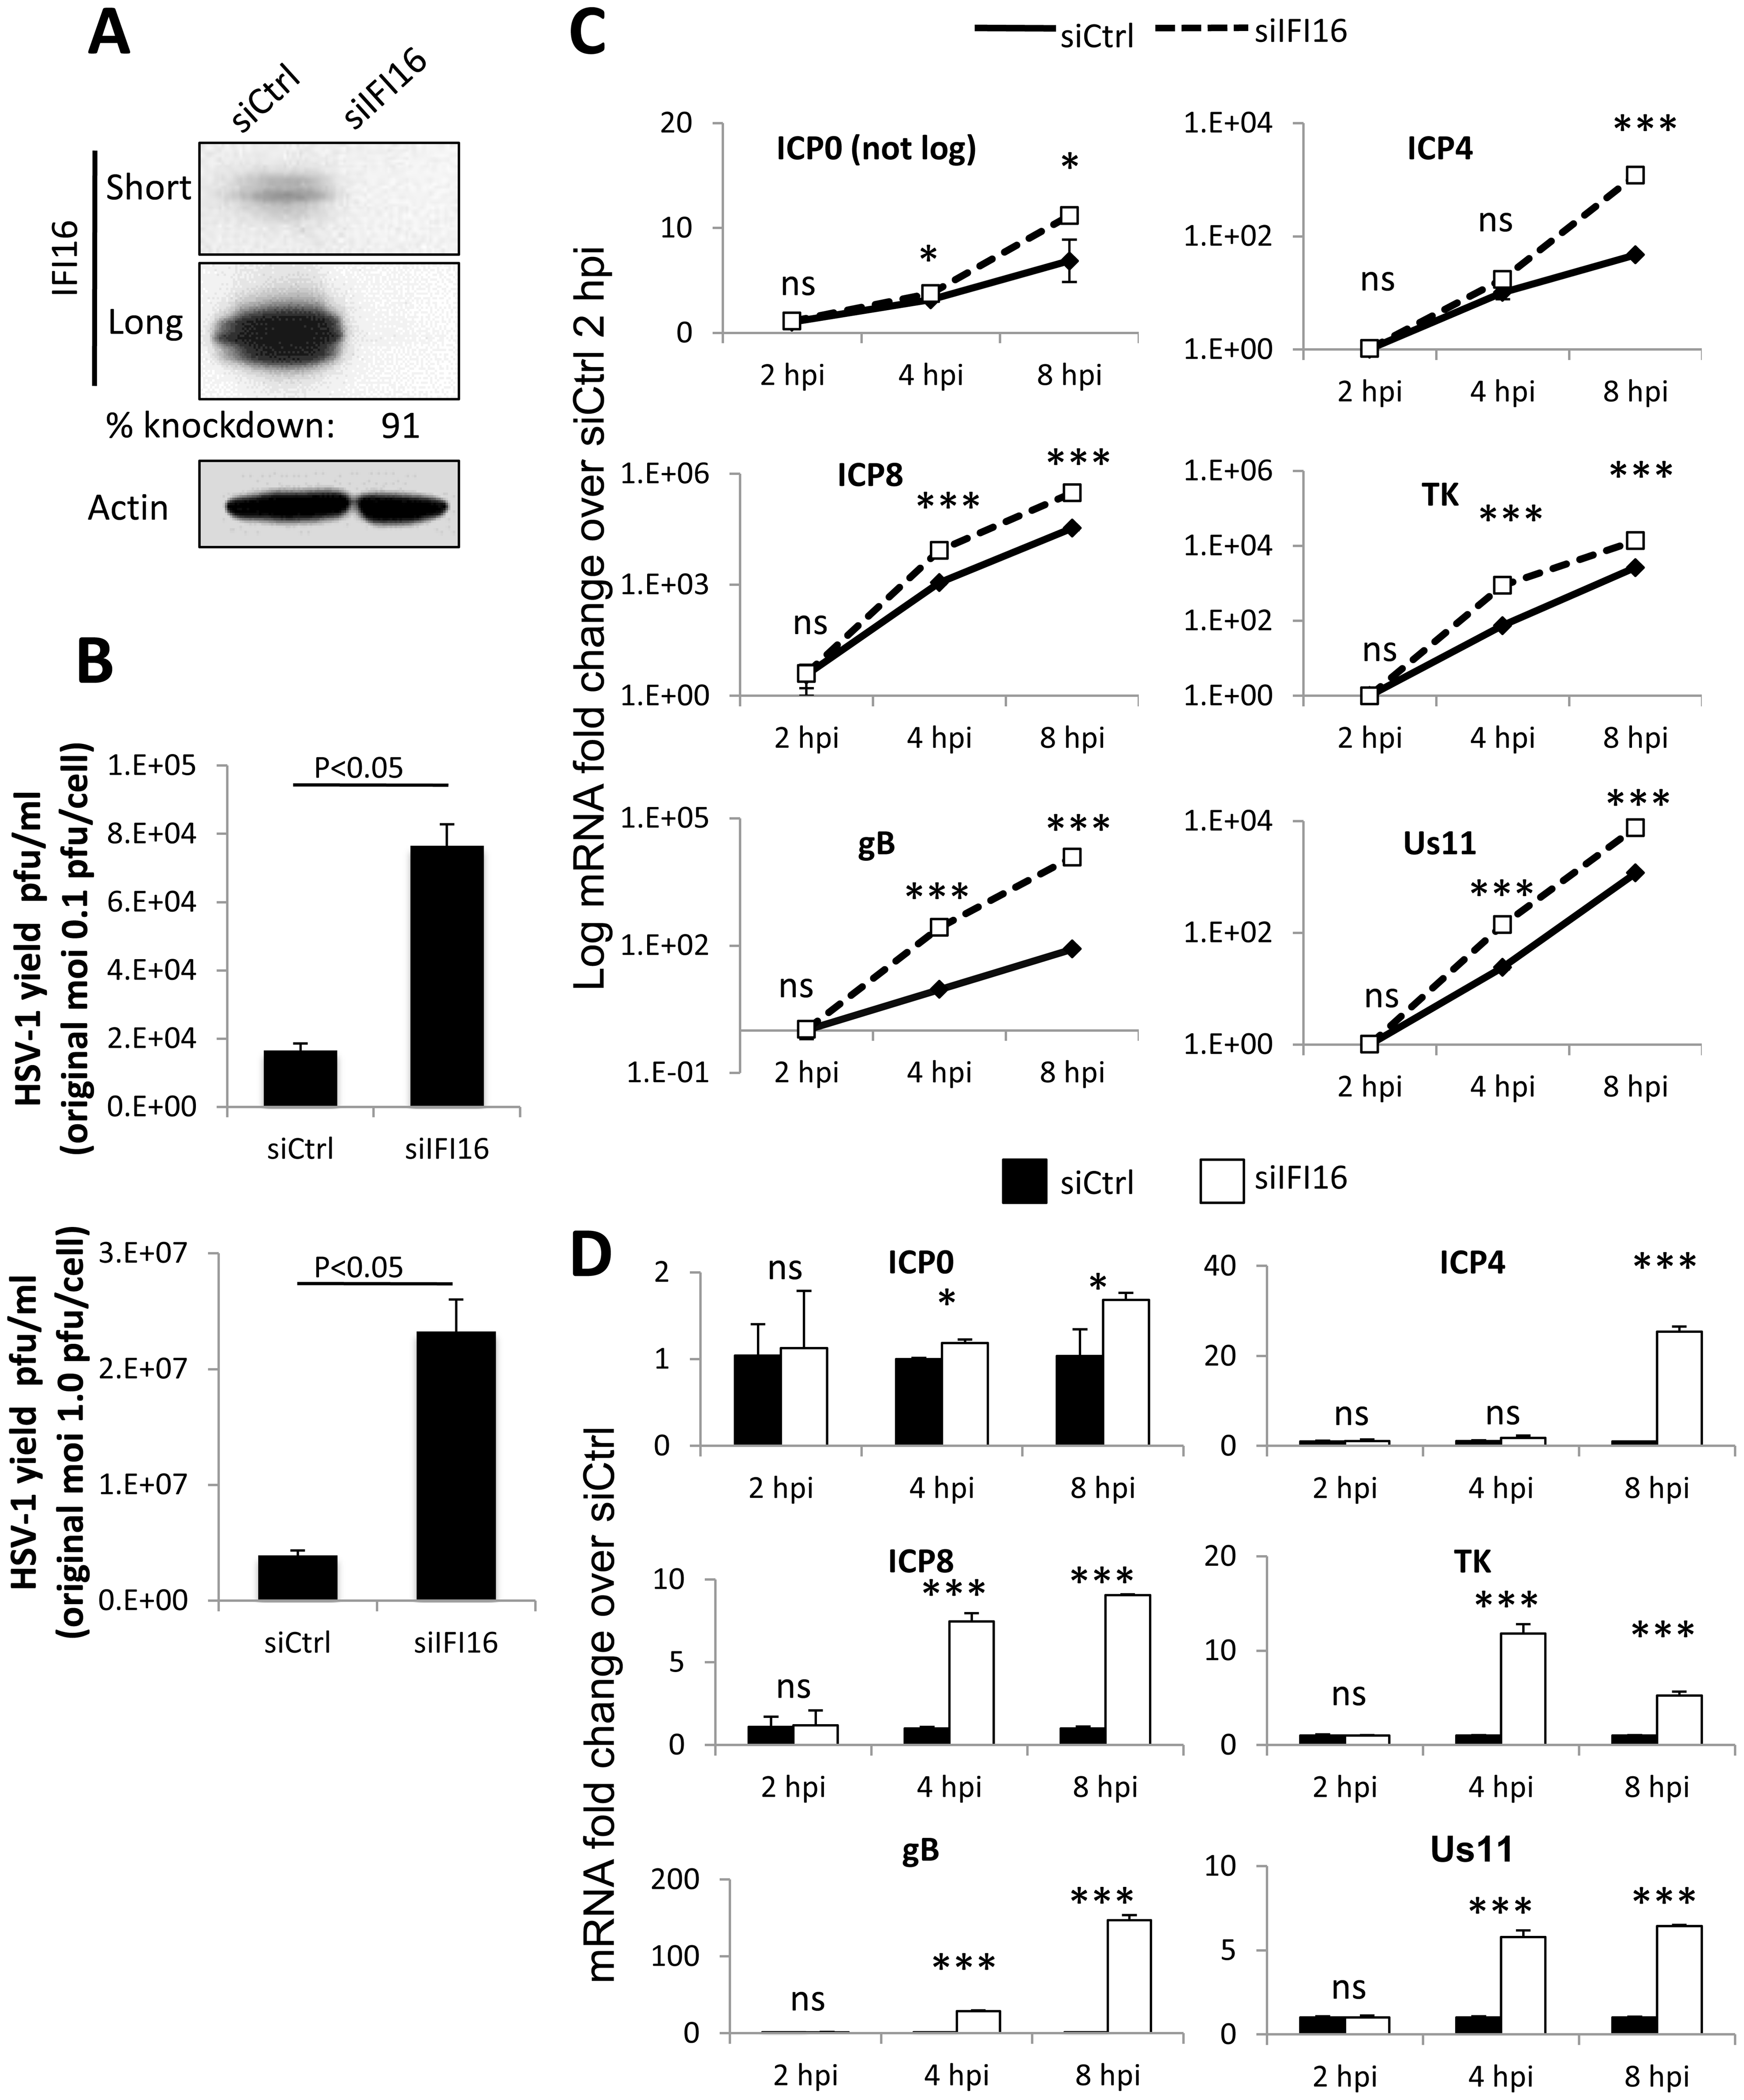 Effect of IFI16 depletion on HSV-1 gene expression, replication and viral yield.